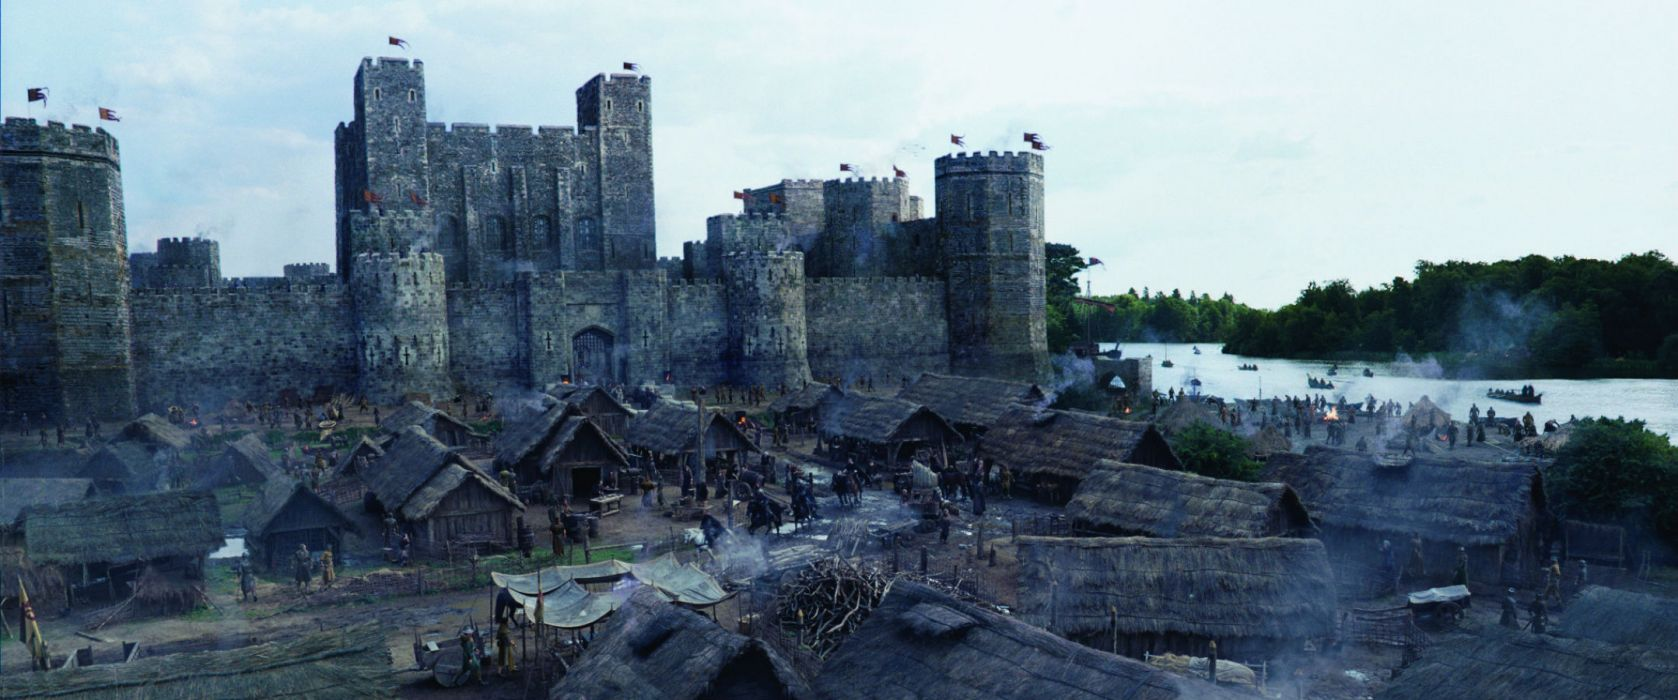 ROBIN-HOOD Action Adventure Drama robin hood fantasy castle city      h wallpaper